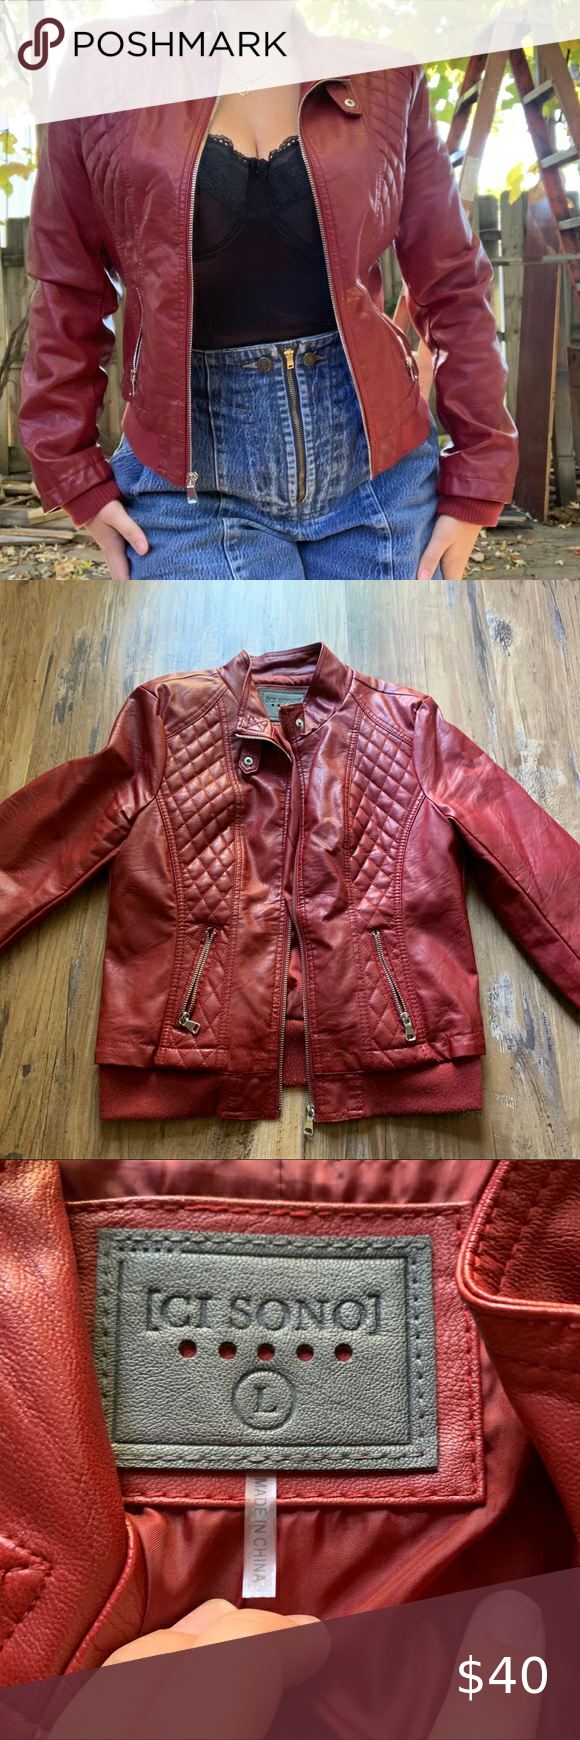 Ci Sono Faux Burgundy Leather Jacket In 2020 Burgundy Leather Jacket Leather Jacket Burgundy Leather